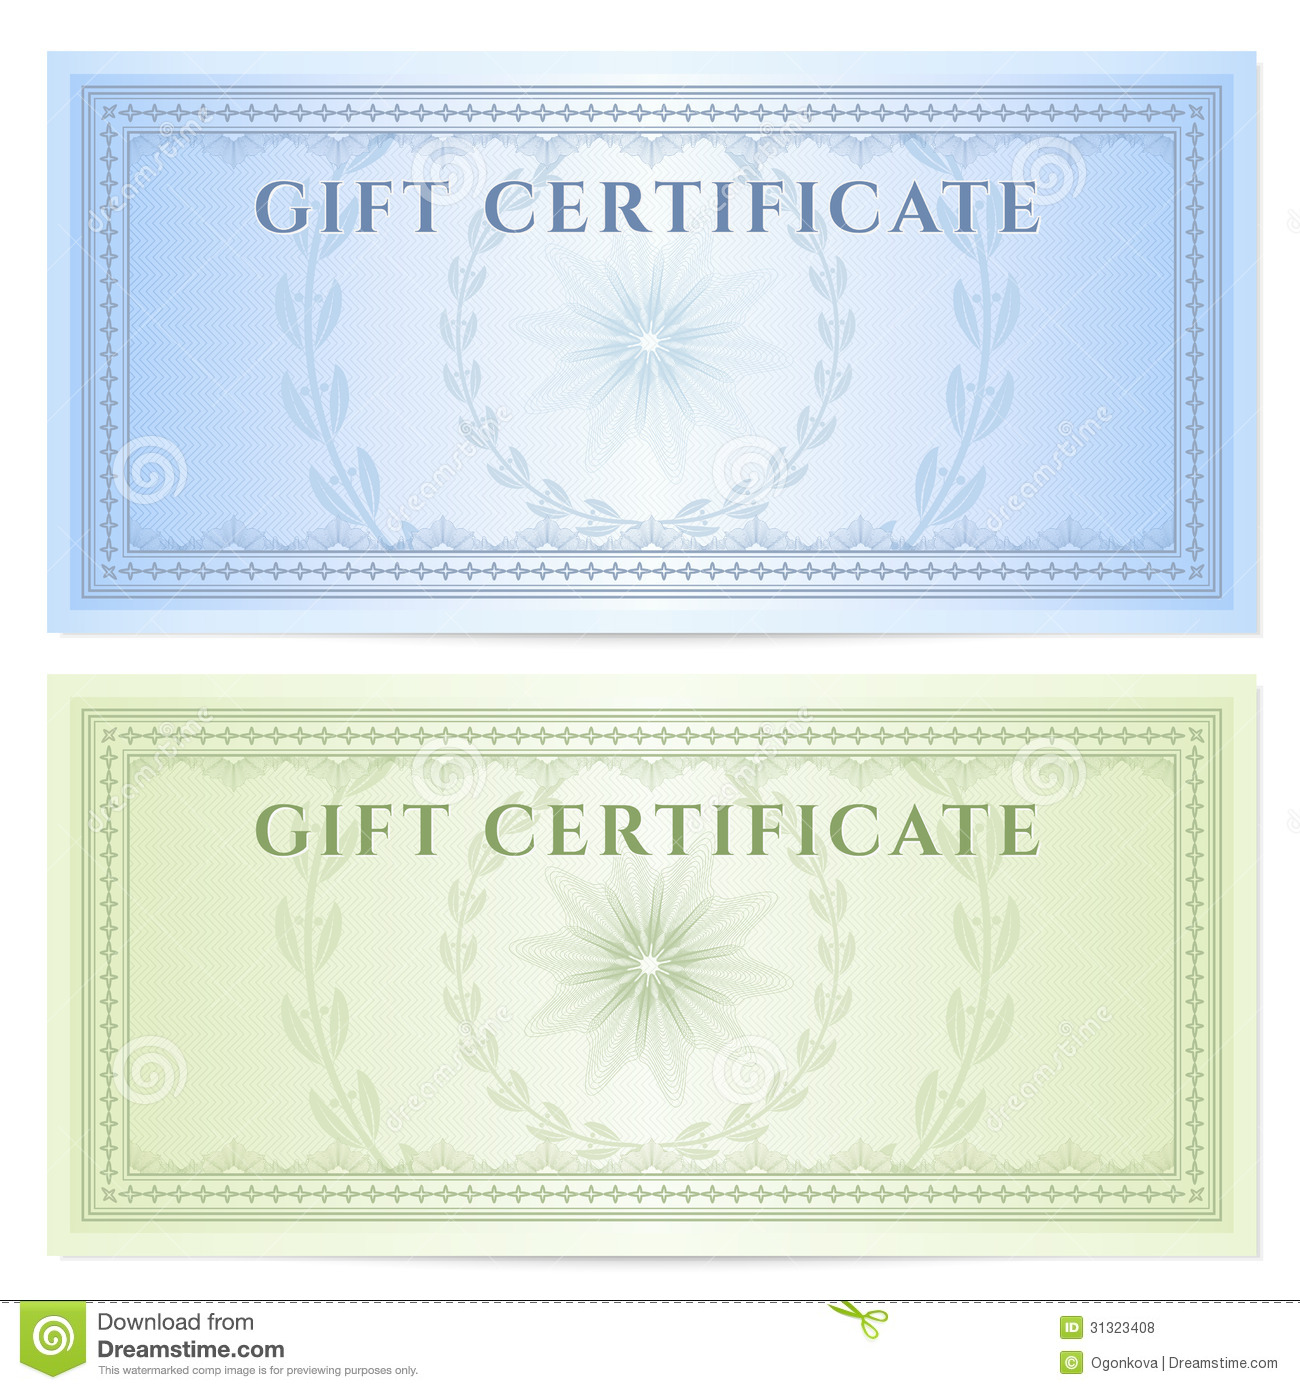 Gift certificate voucher template with pattern stock vector gift certificate voucher template with pattern royalty free stock photo yelopaper Images